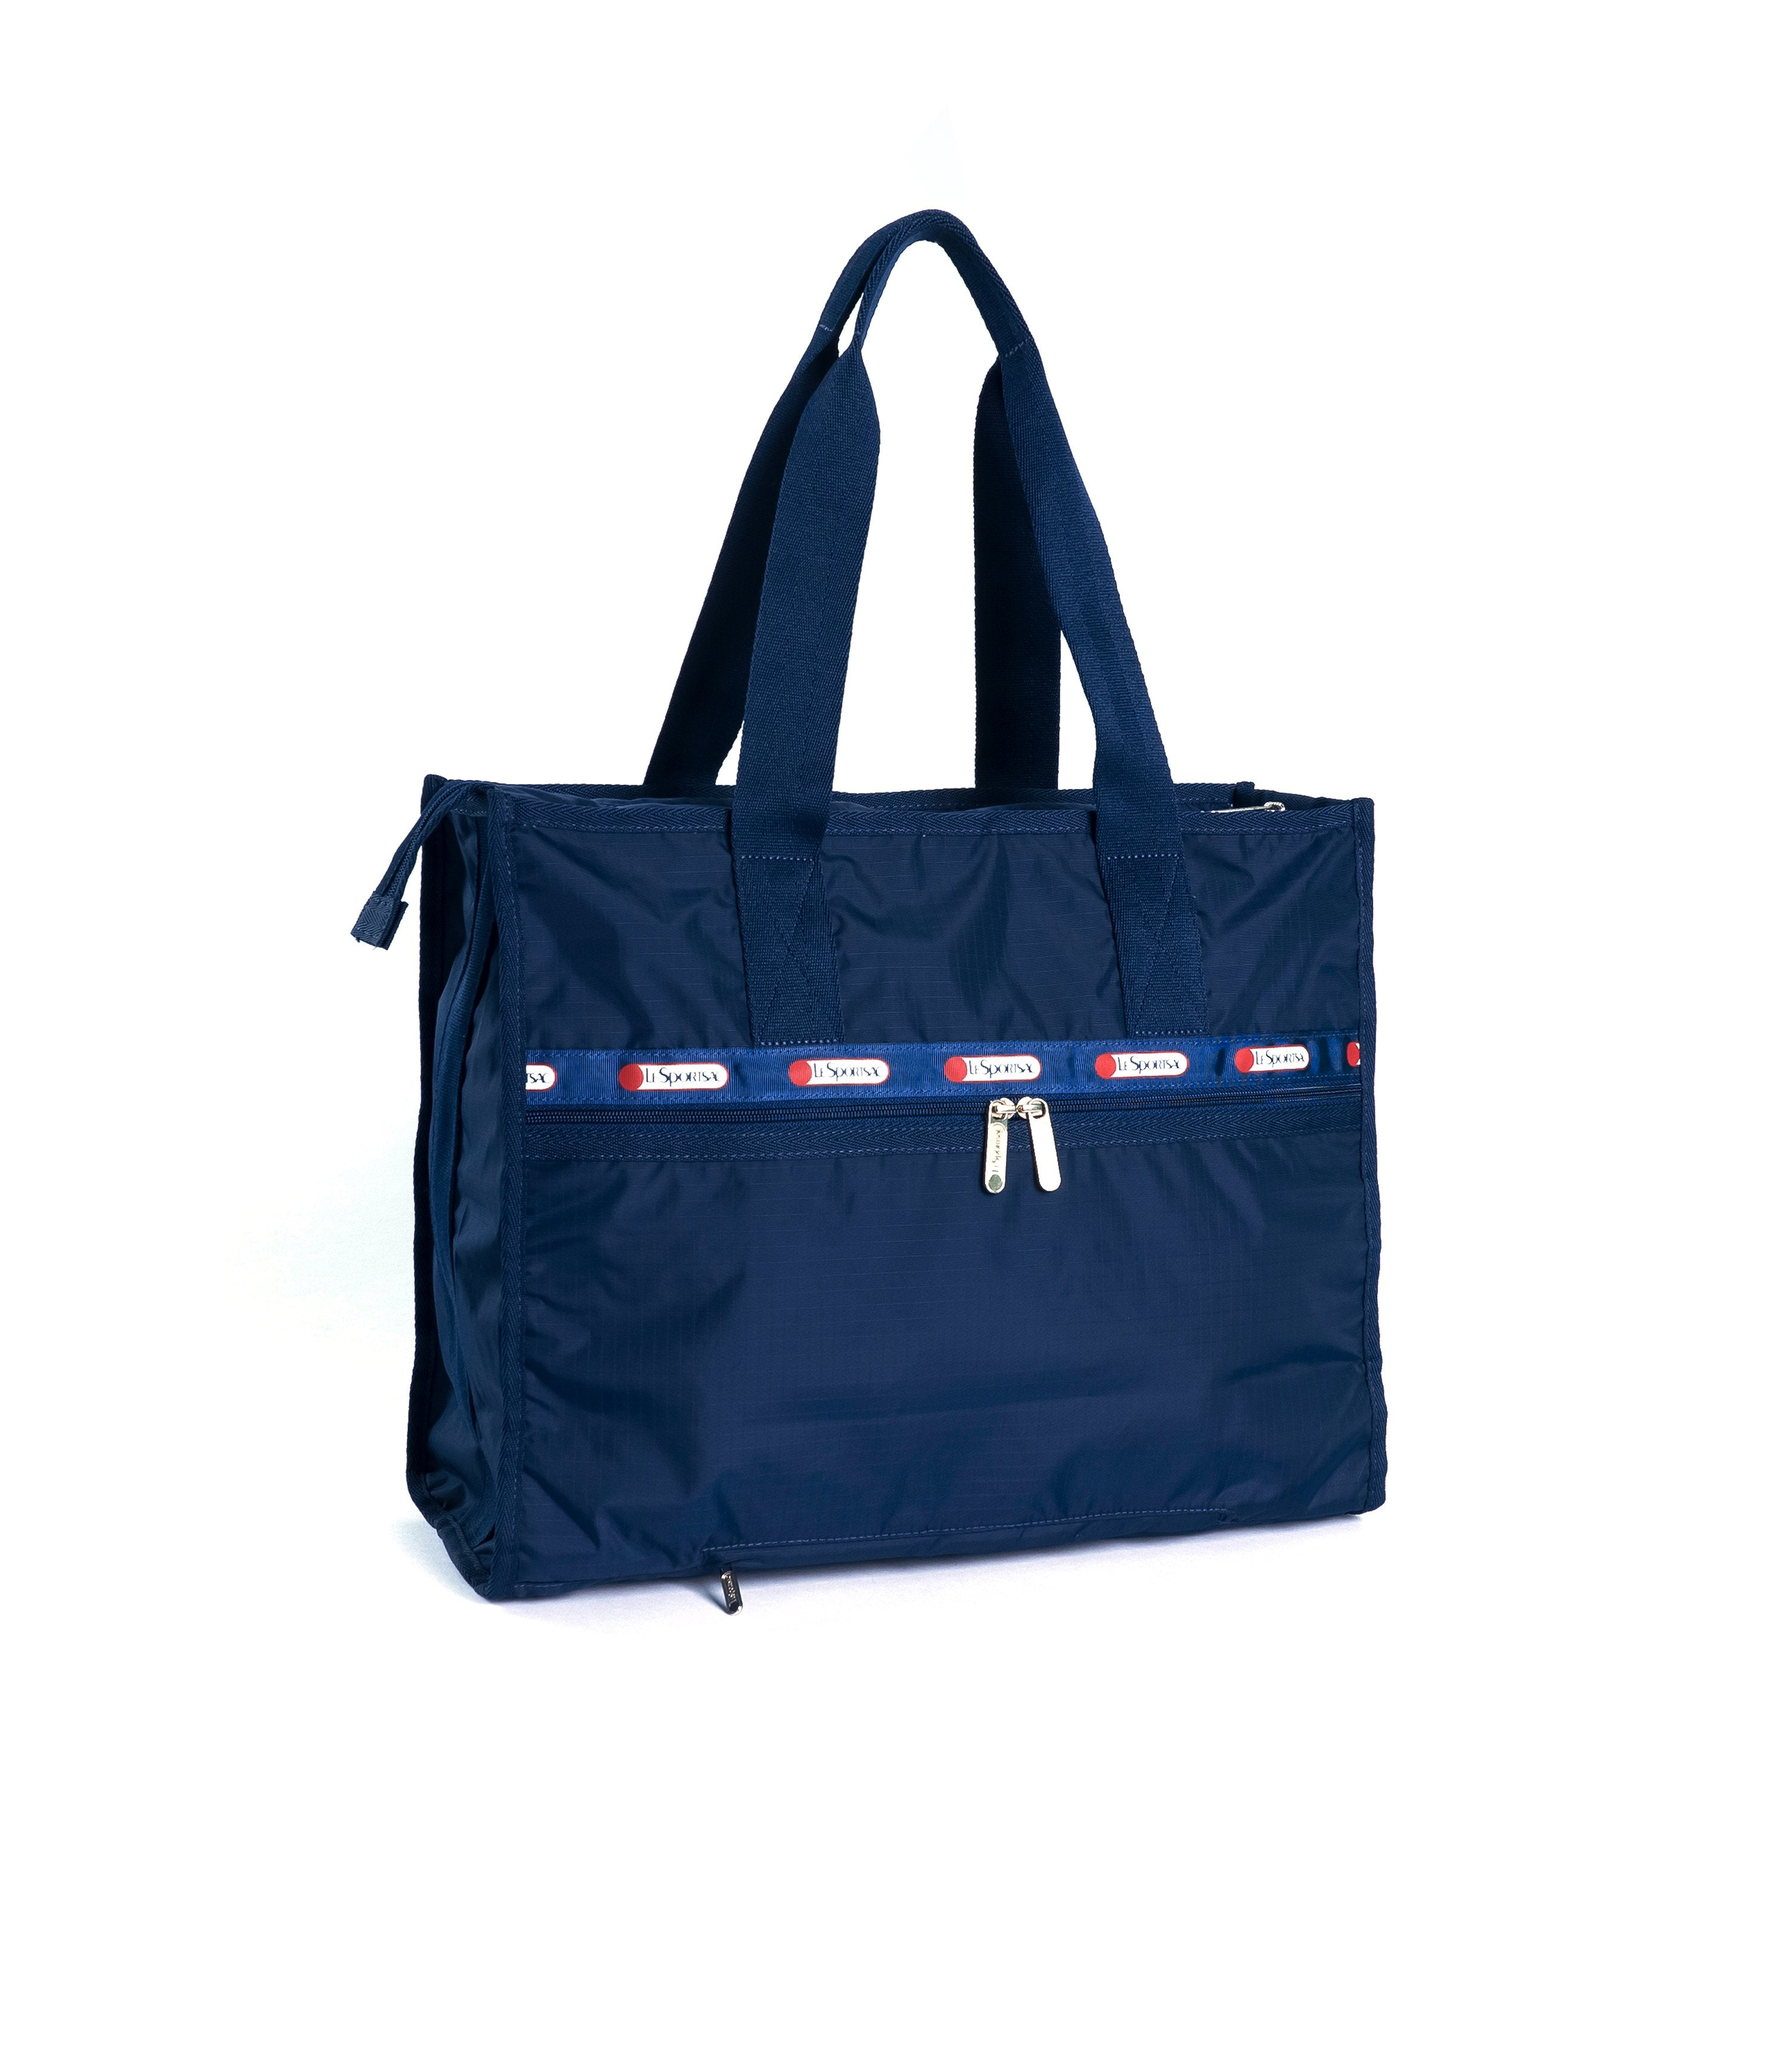 Deluxe East/West Tote